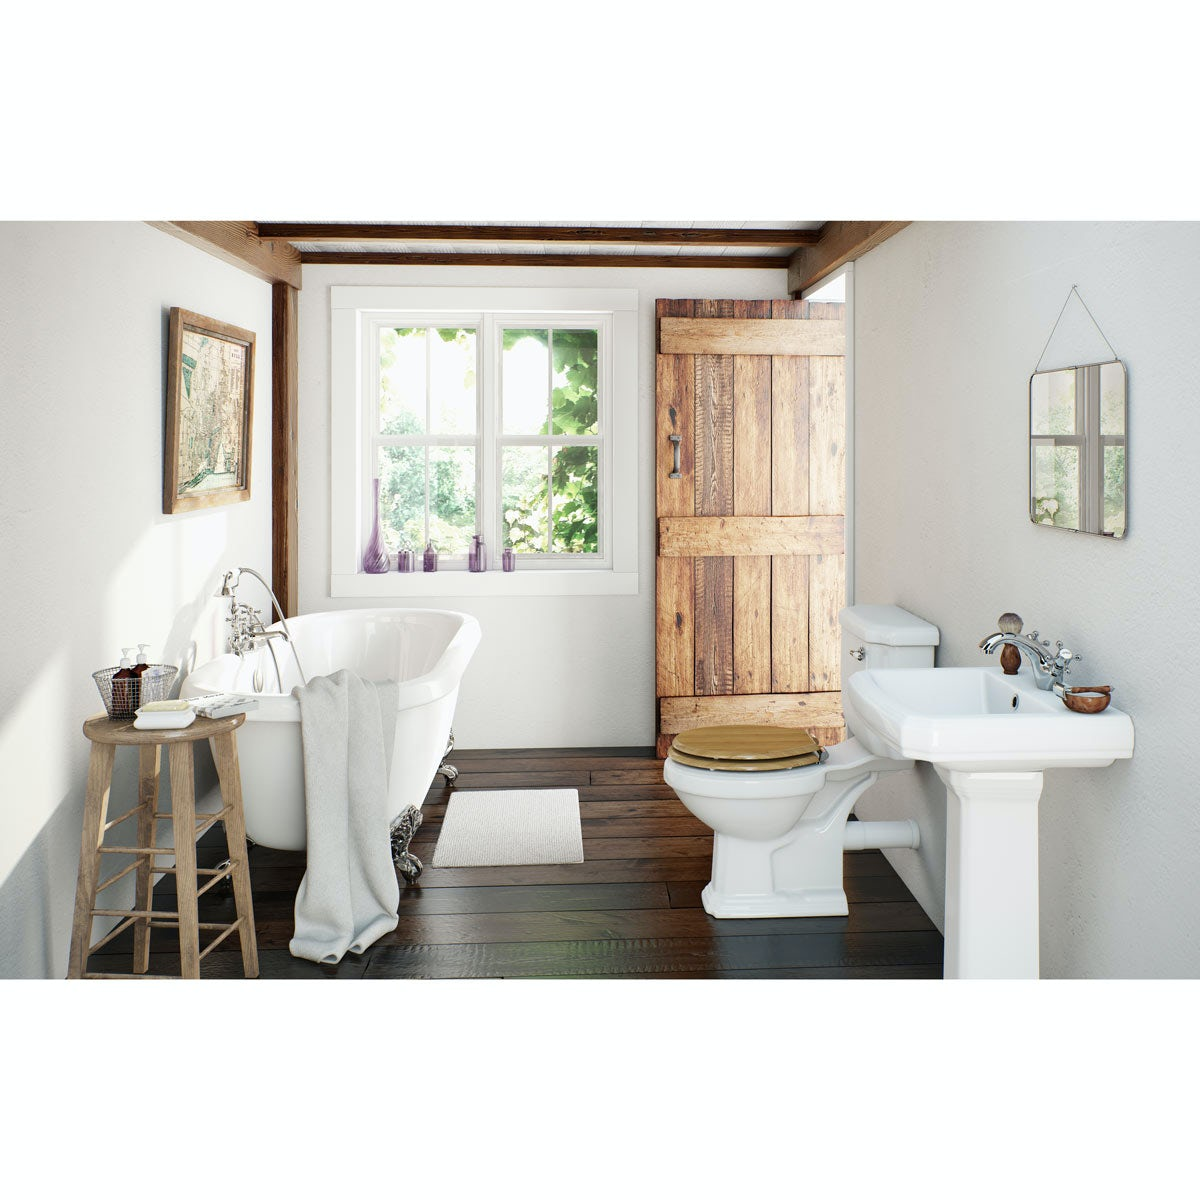 Bathroom Suites Cavendish Oak Bathroom Suite With Roll Top Bath Large